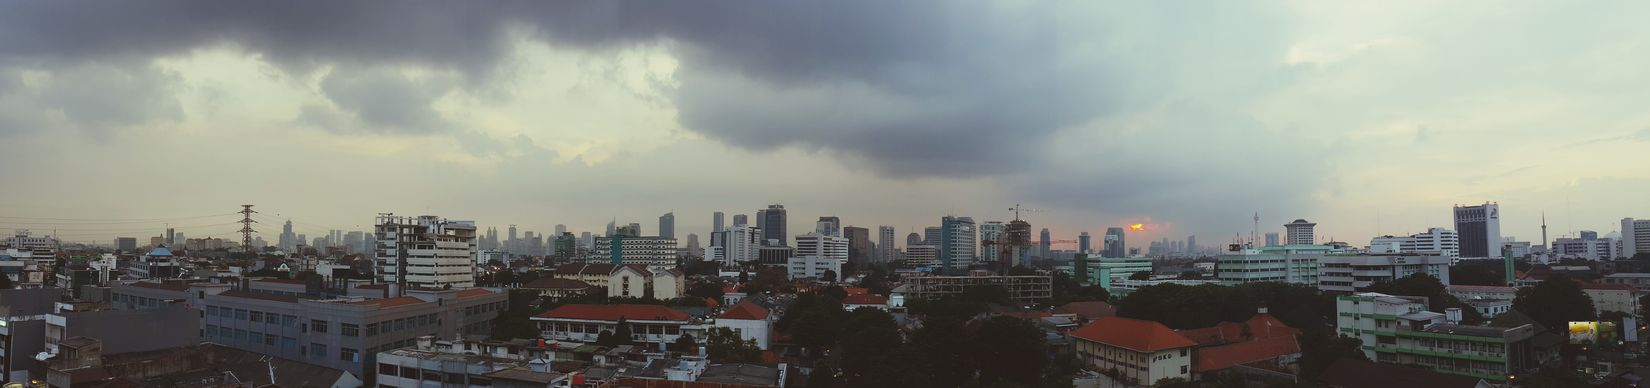 Jakarta,in the afternoon